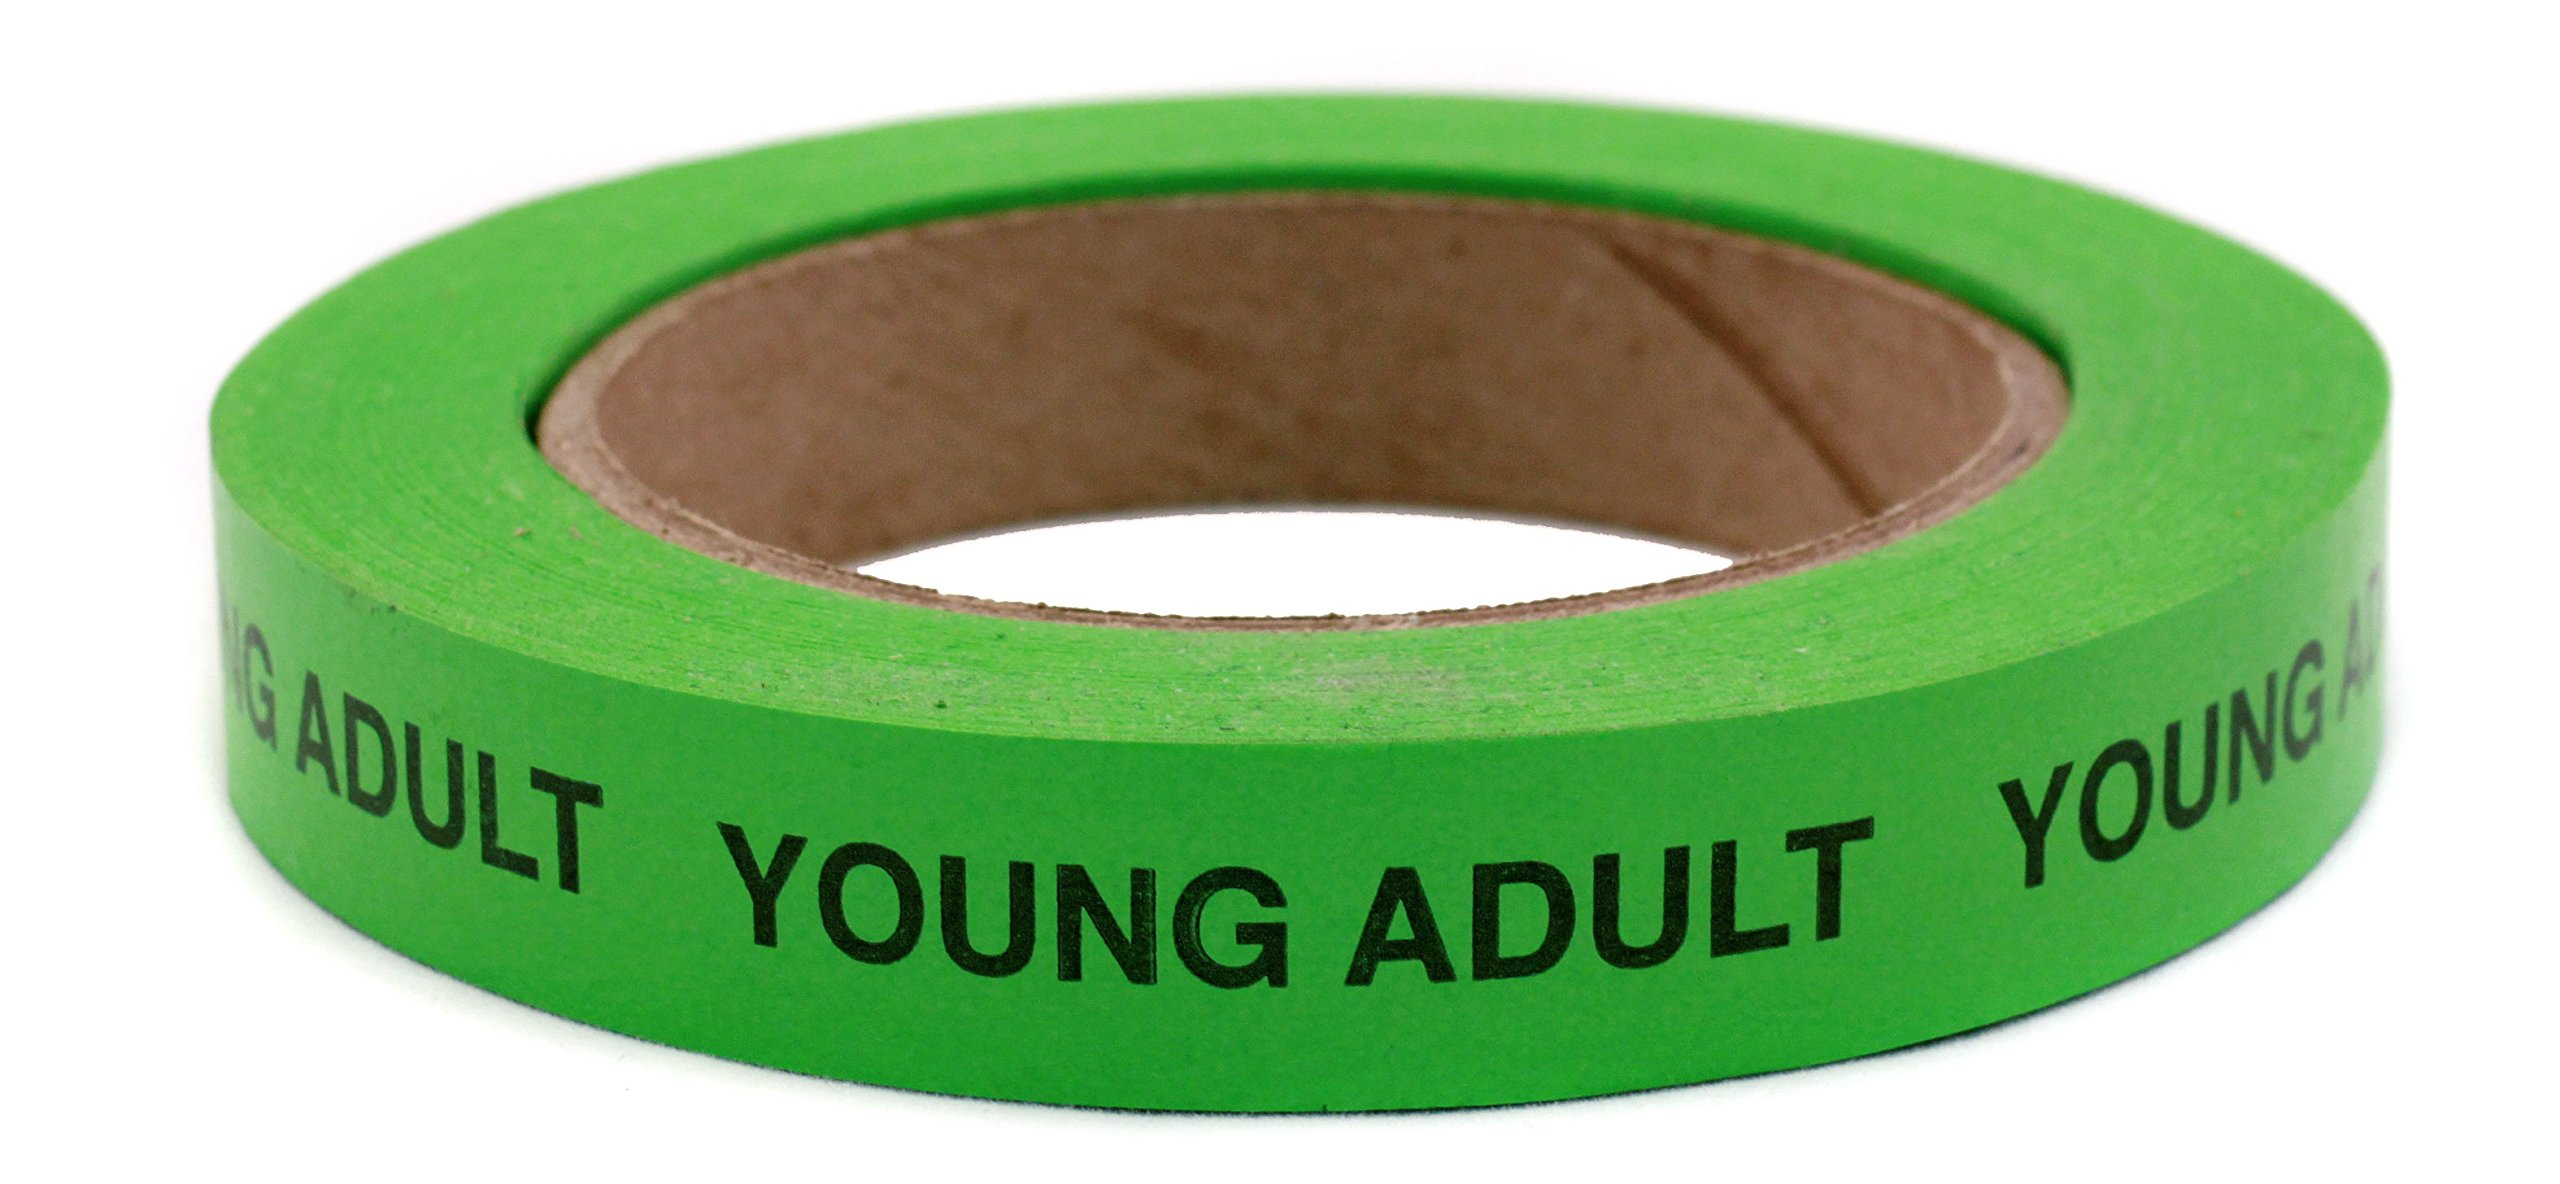 ''YOUNG ADULT'' Continuously Imprinted, Removable-Adhesive Green Tape with Black Imprint   3/4'' x 1440'' Sticky Tape